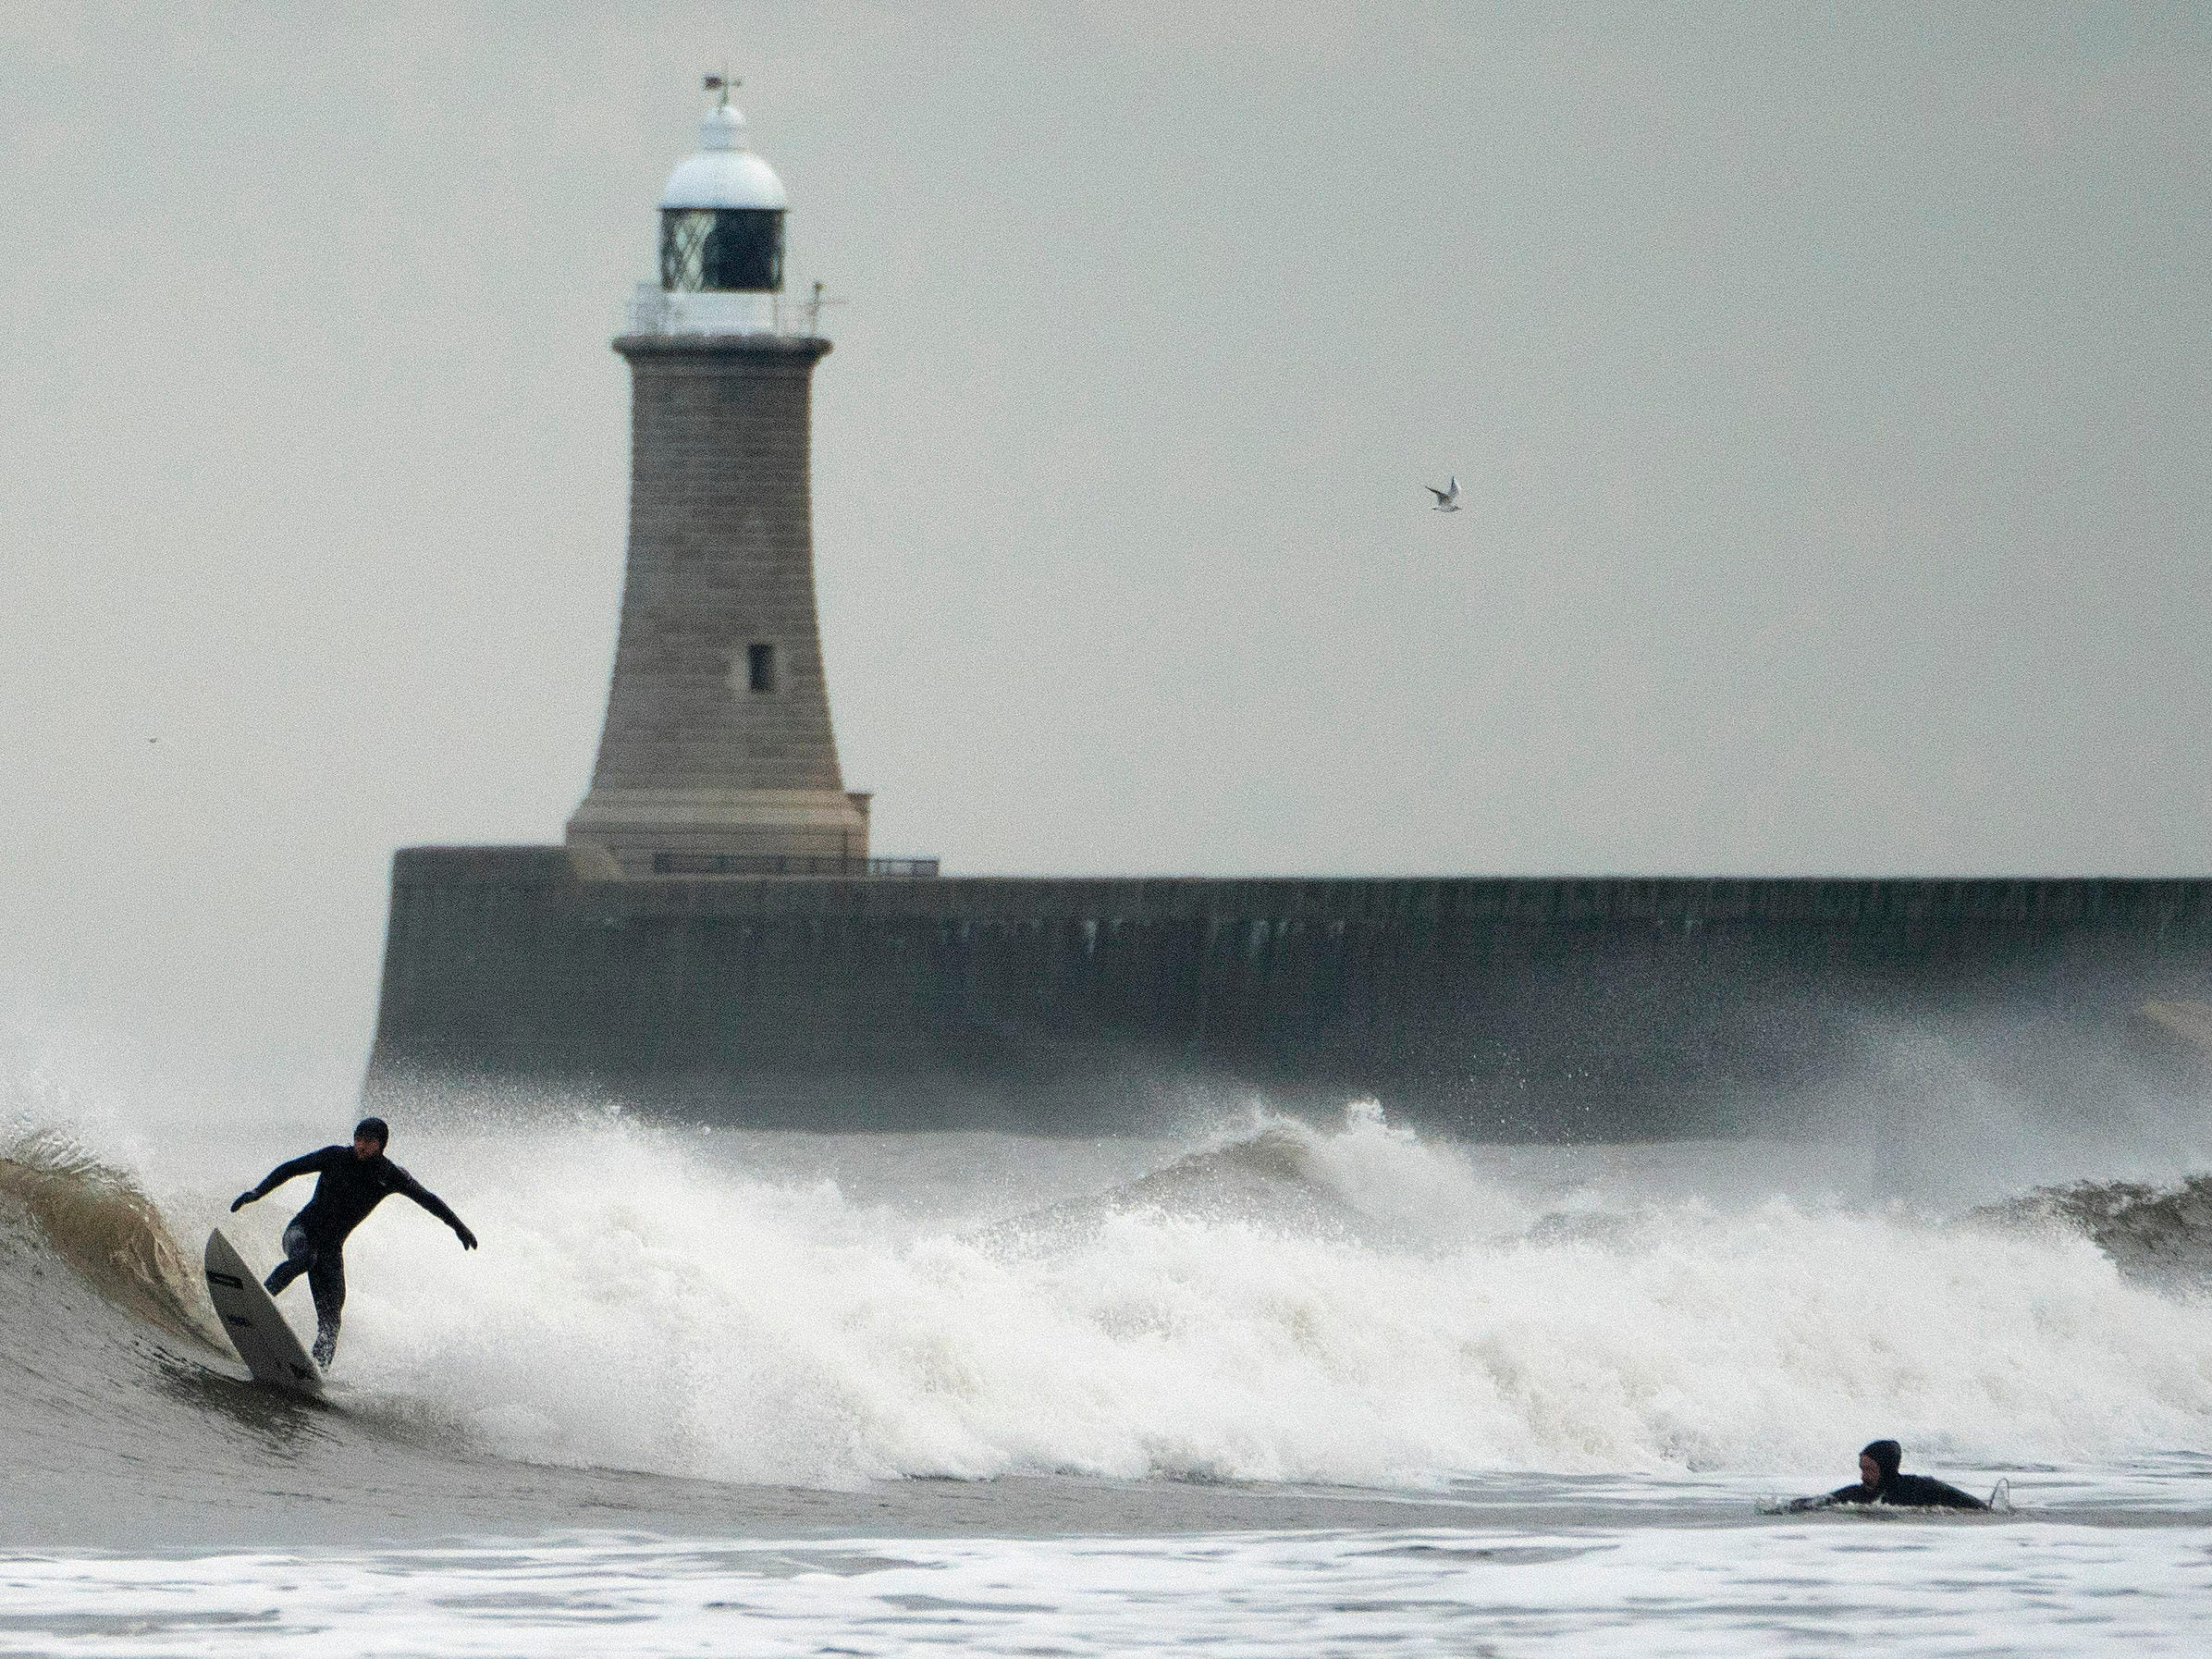 Surfers on Wednesday Jan. 16, 2019 take on the waves at Tynemouth in northeast England, where the weather is predicted to get much colder in the coming days. Britain's Met Office has issued a warning for snow and ice over parts of Scotland and northern England.